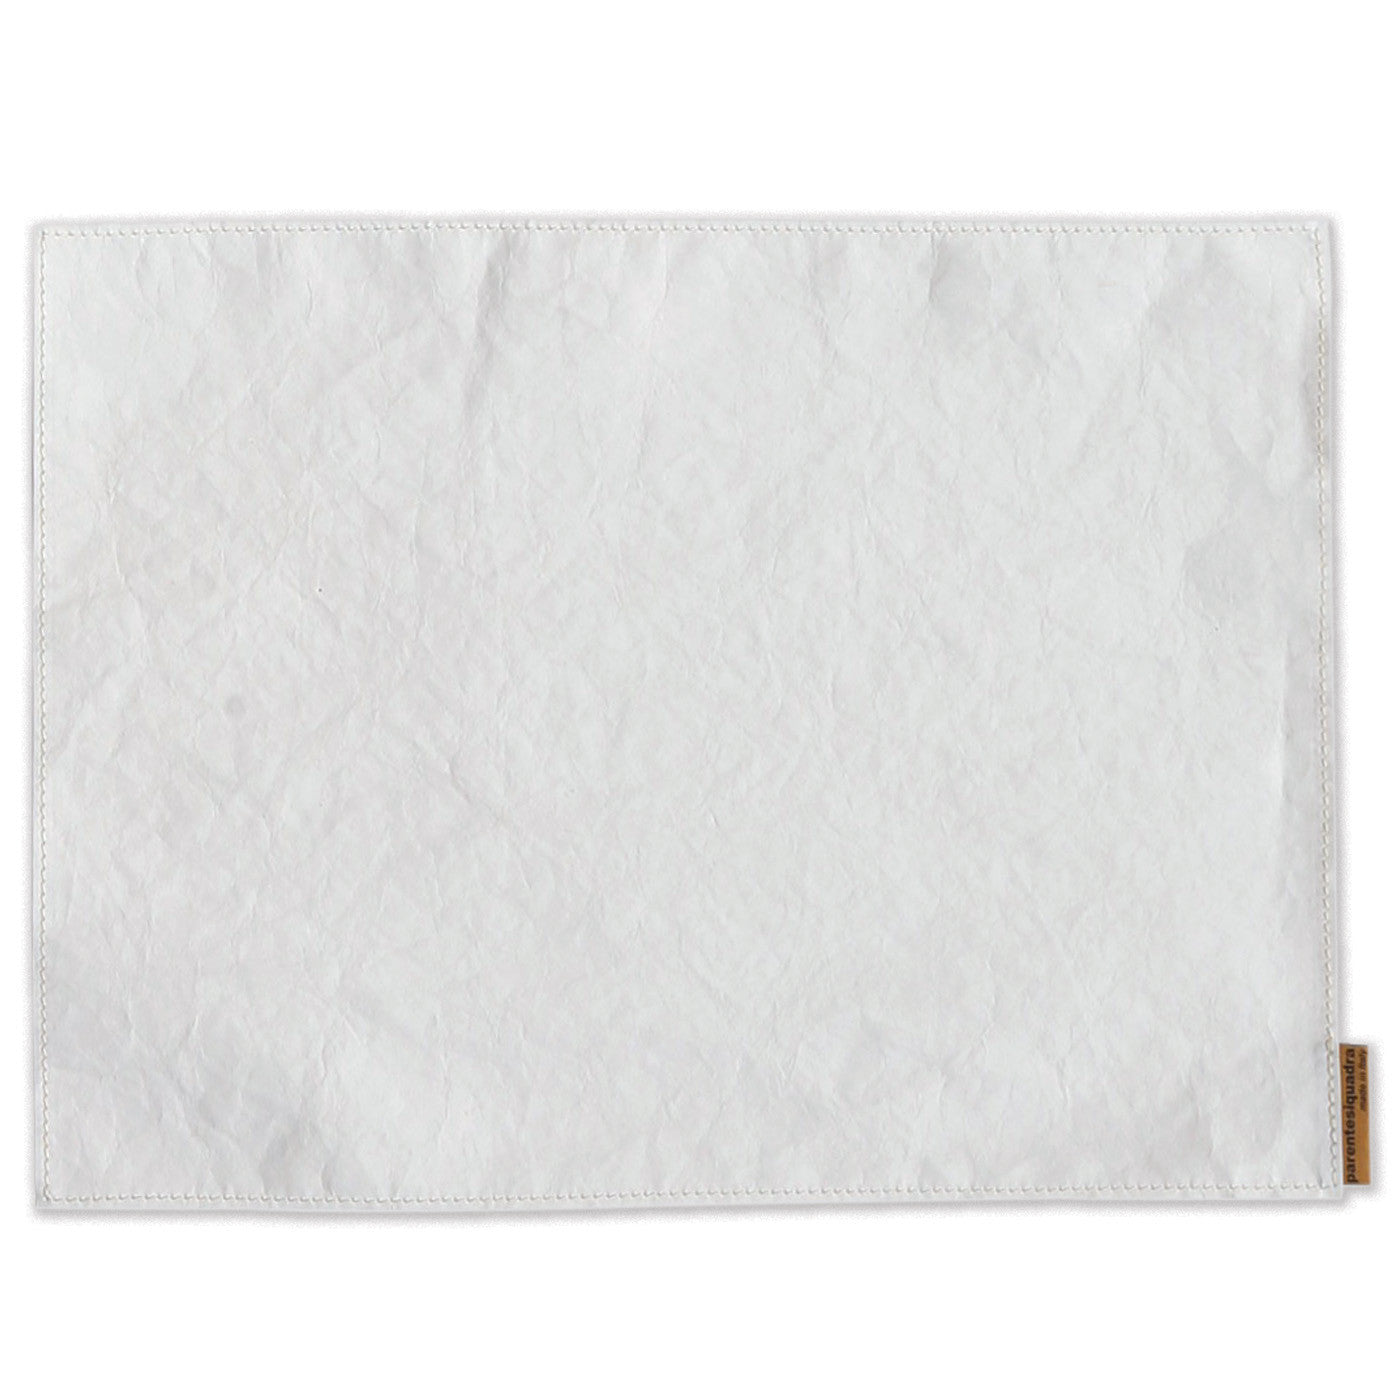 White Paper Placemats (Set of 4)